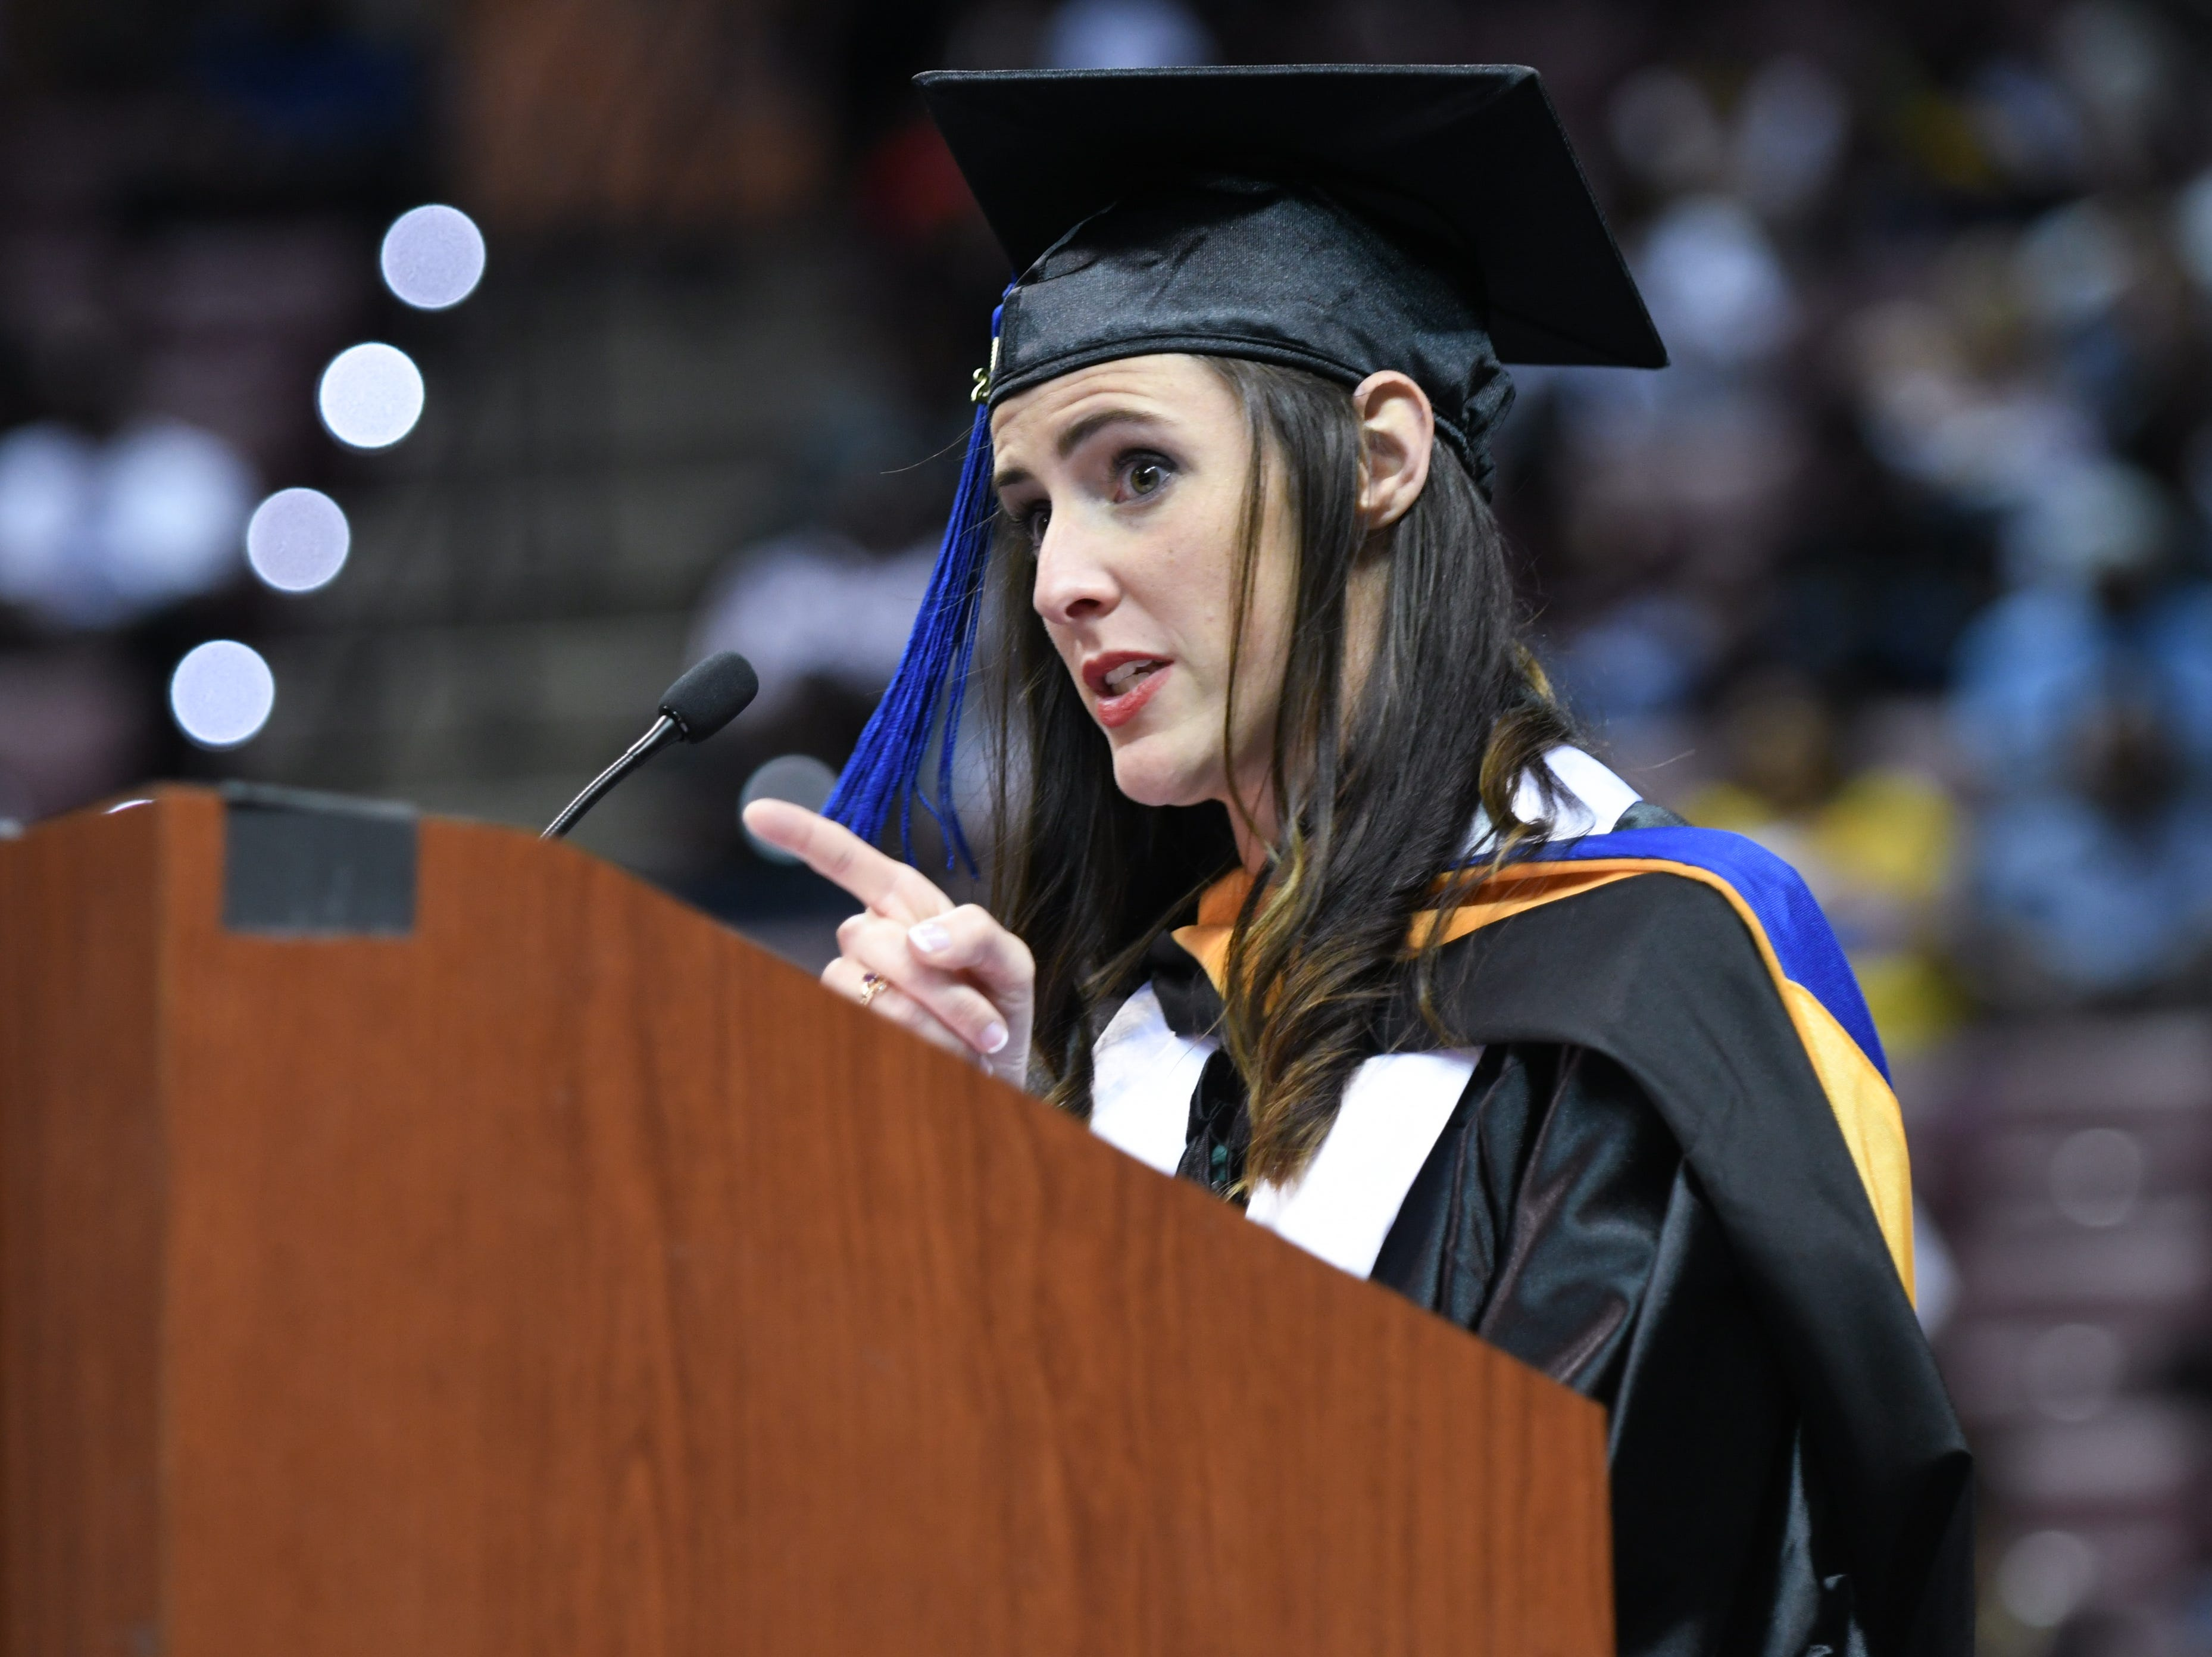 Tallahassee Community College nursing graduate Ashley Maxwell speaks at her graduation ceremony at Donald L. Tucker Civic Center Saturday, May 4, 2019.